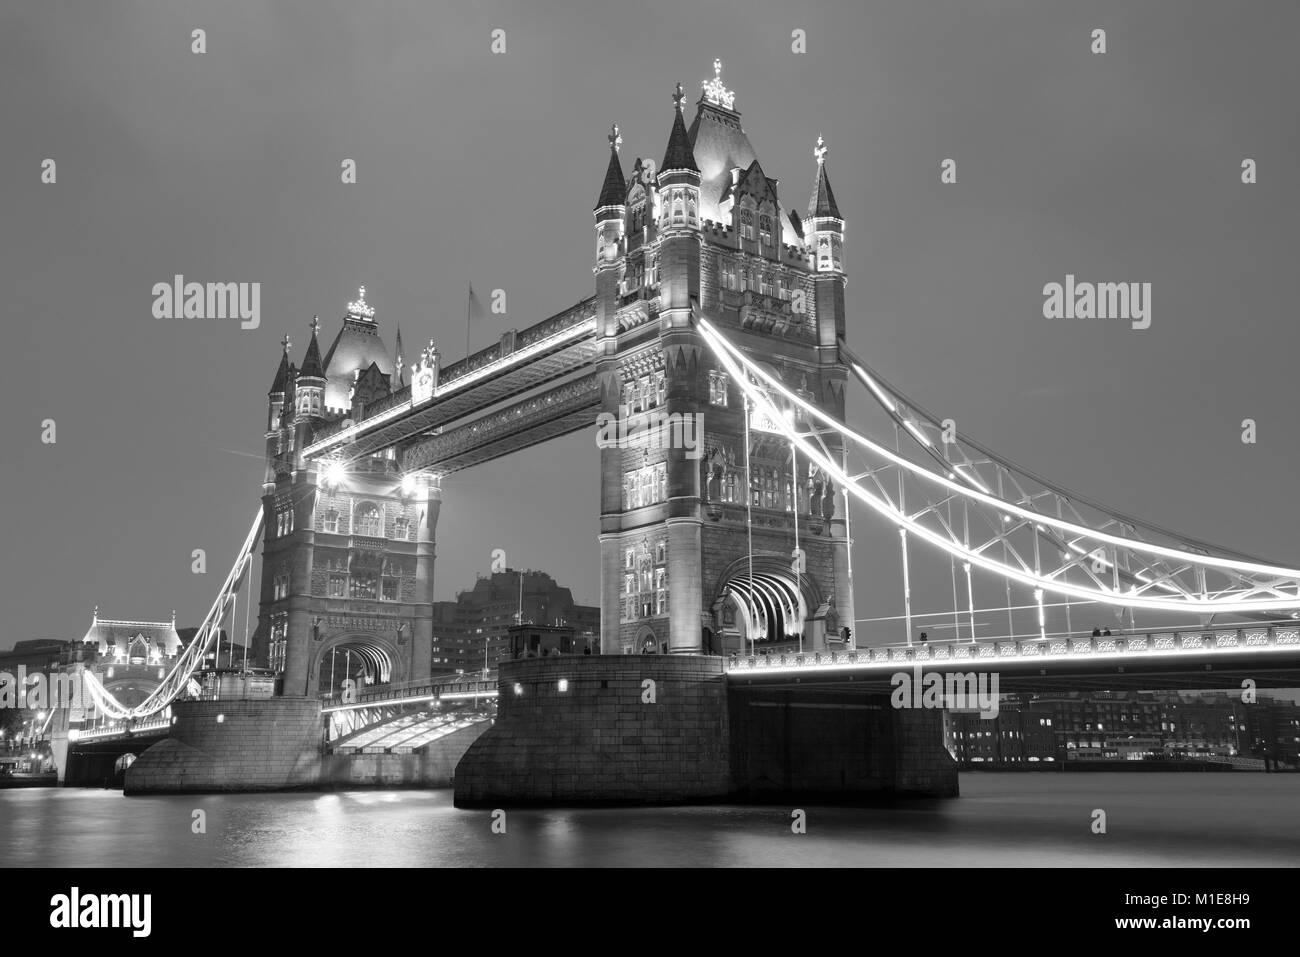 Tower Bridge in London in black and white at night. - Stock Image